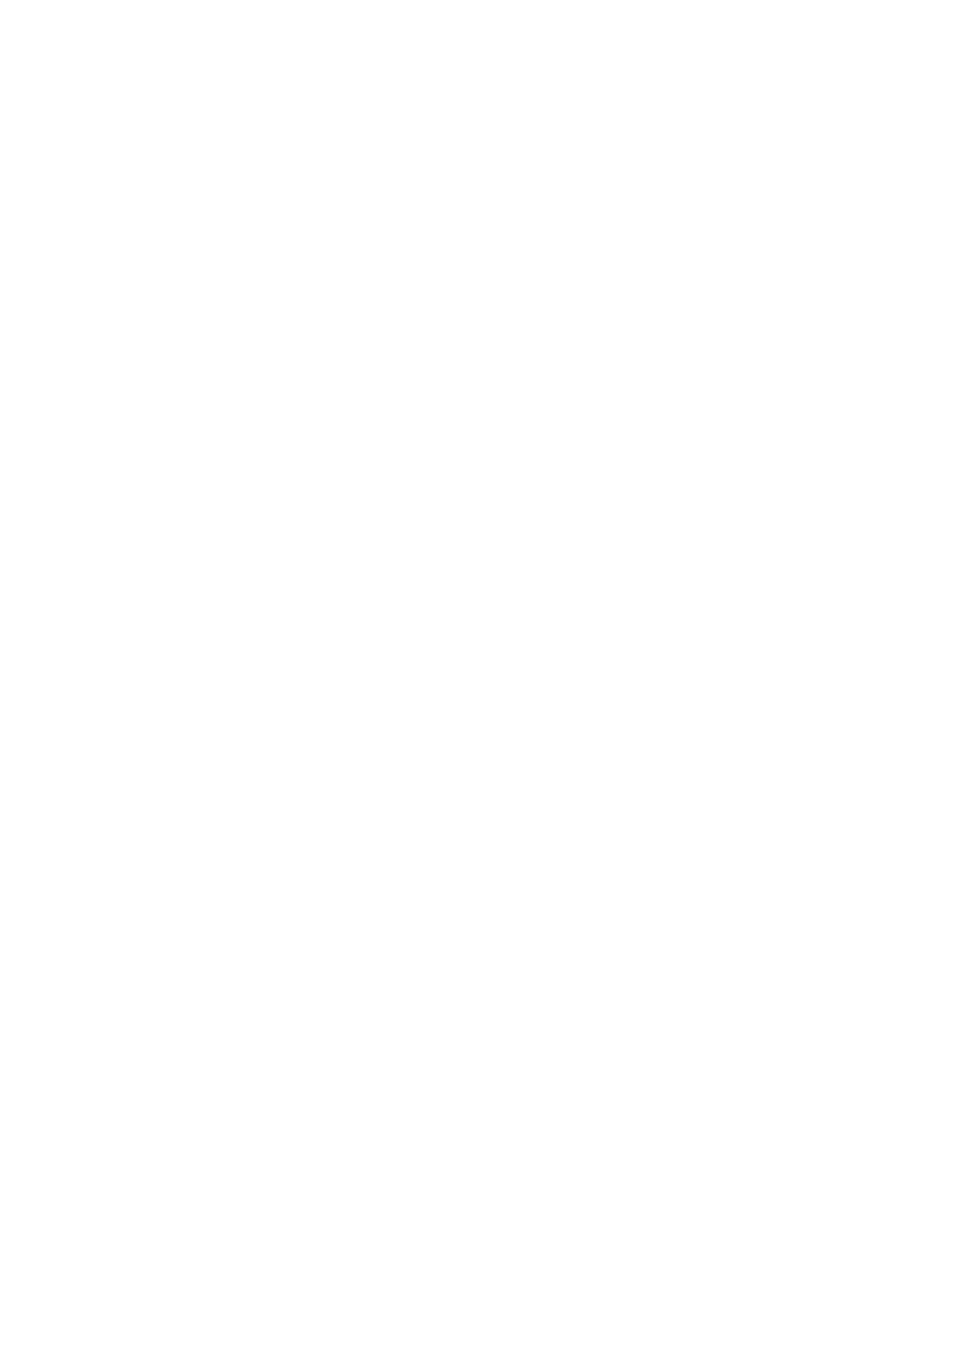 motorola minitor v user manual page 14 17 original mode rh manualsdir com motorola minitor v owners manual motorola minitor vi manual